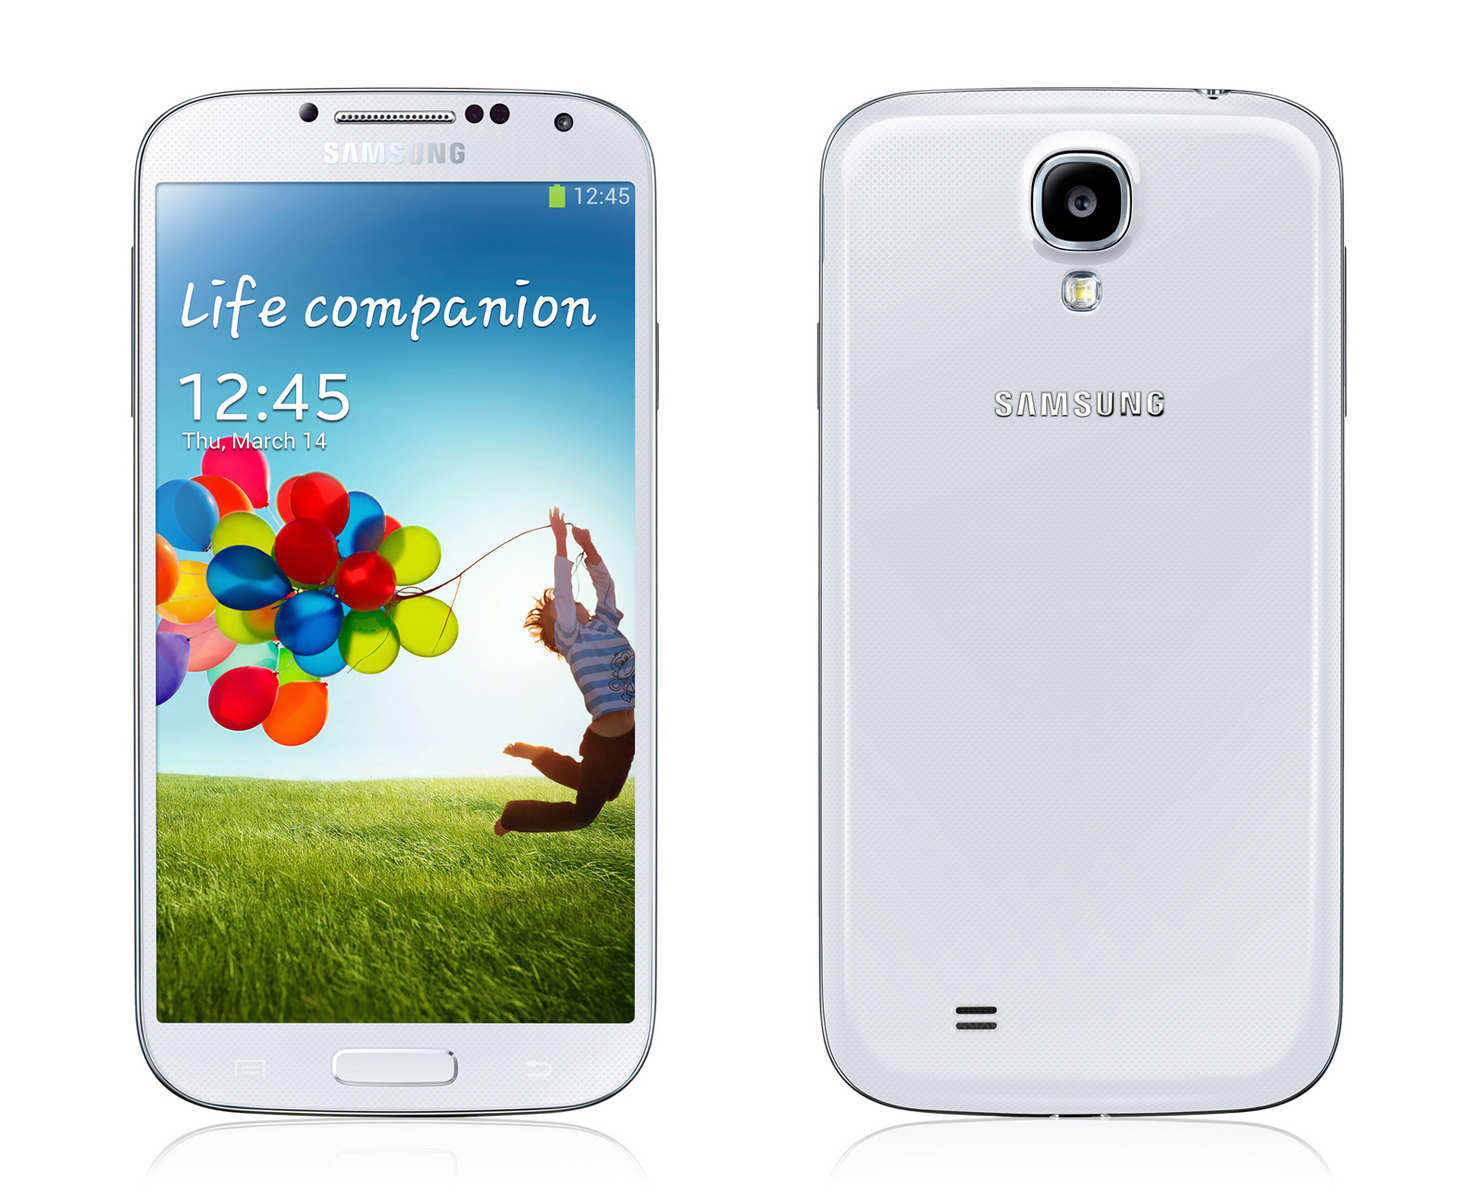 Samsung Galaxy S4 Android 6.0 Marshmallow 2